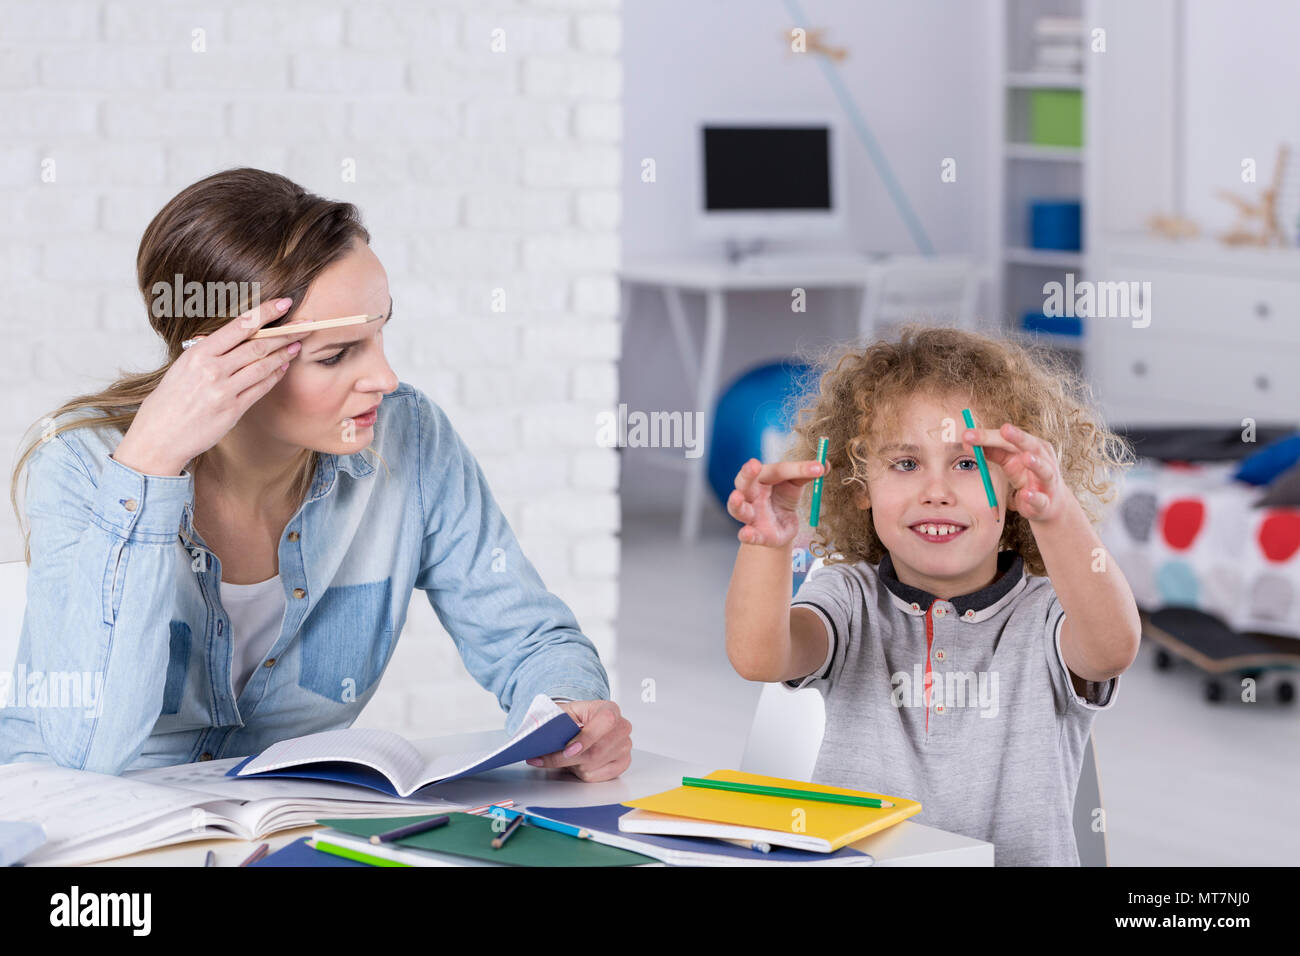 Impatient mother doing homework with distracted son - Stock Image